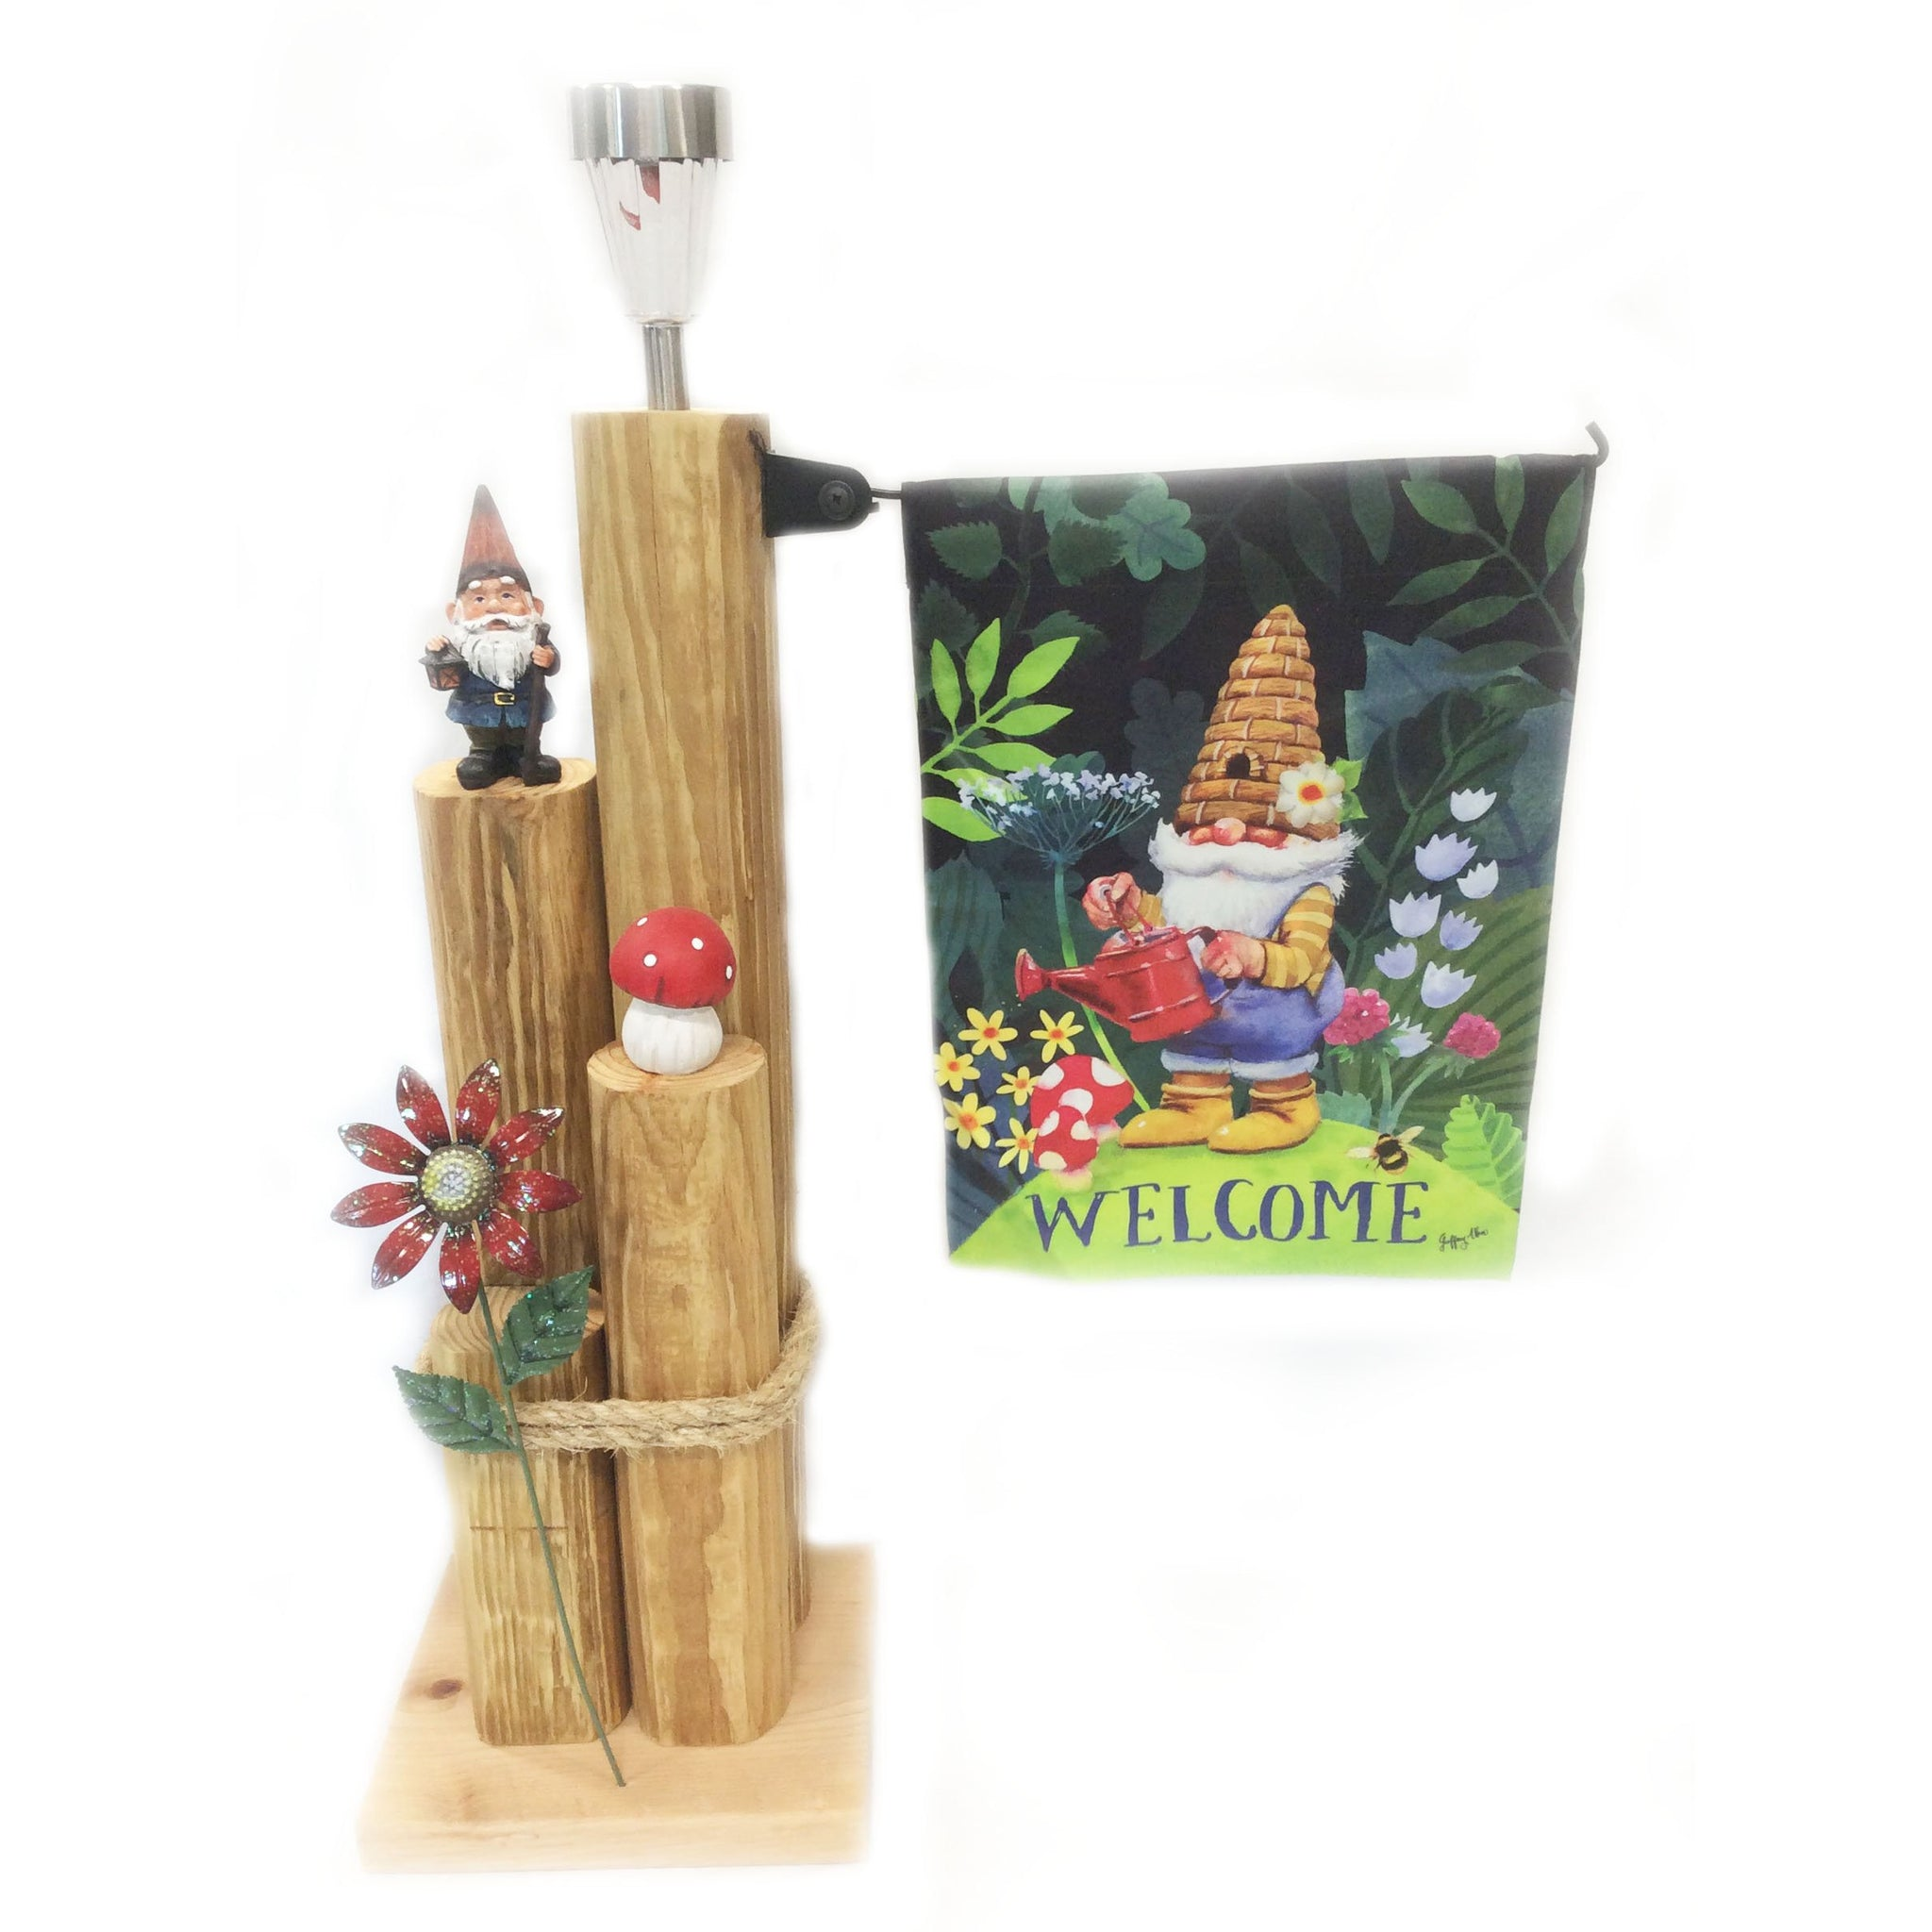 Wooden Solar Light Landscape Timber Garden Lamp Post Featuring Gnomes